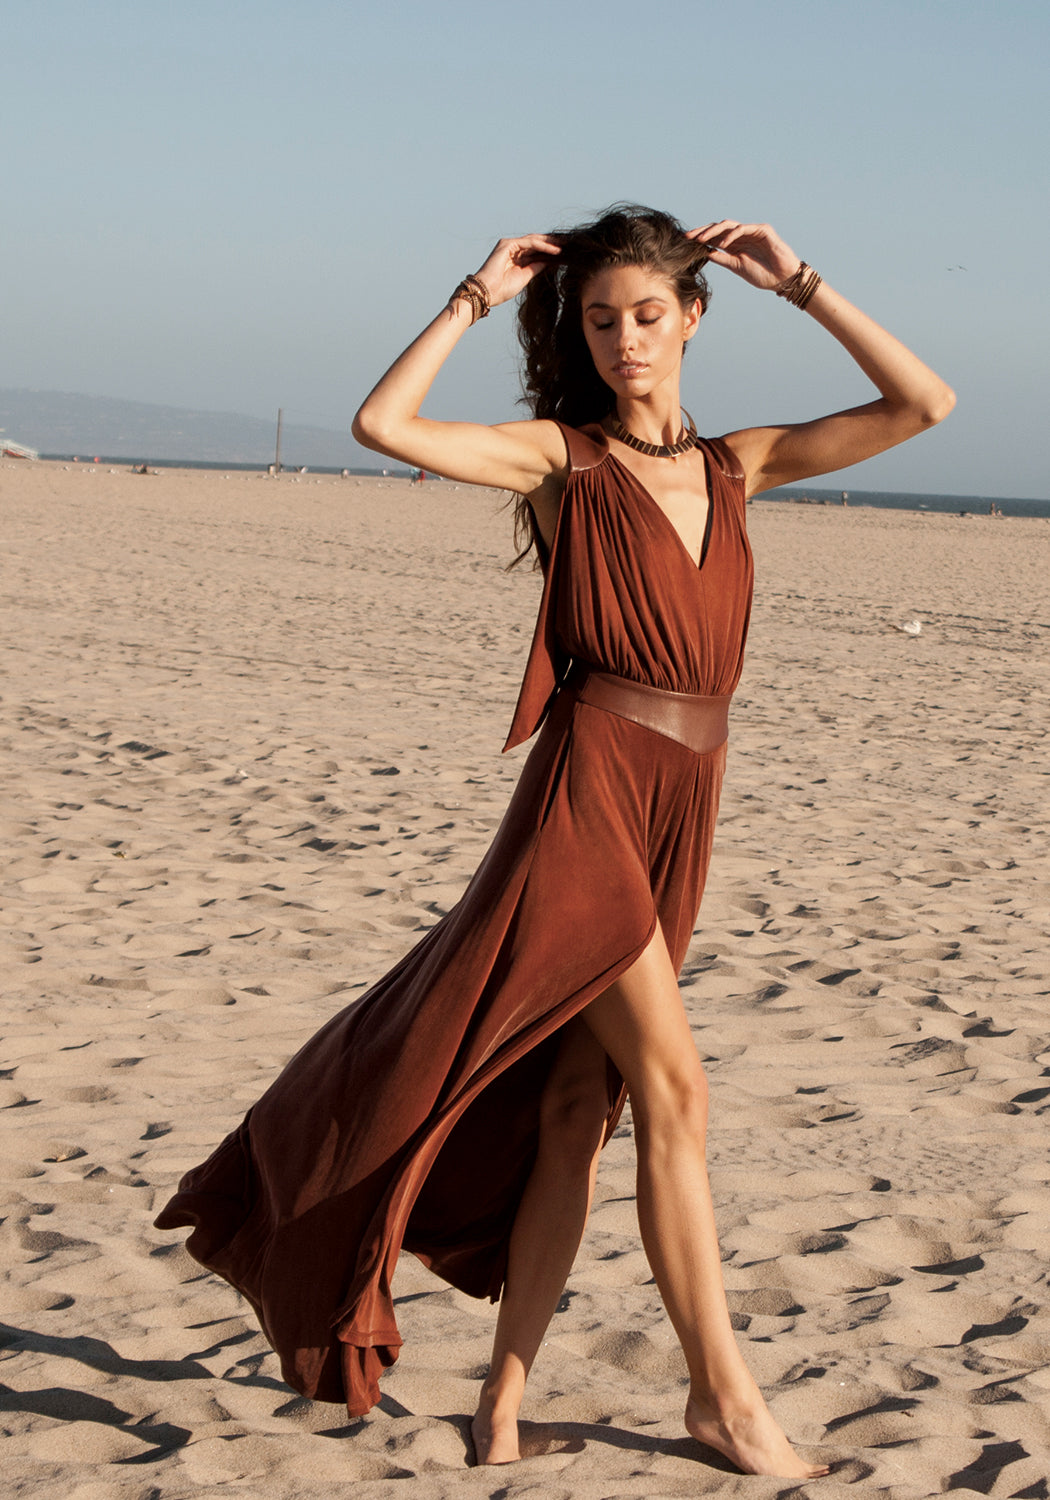 Long, winter maxi dress in brown, cognac color that can be dressed up and worn as a gown to black tie or other evening event or dressed down for daytime looks.